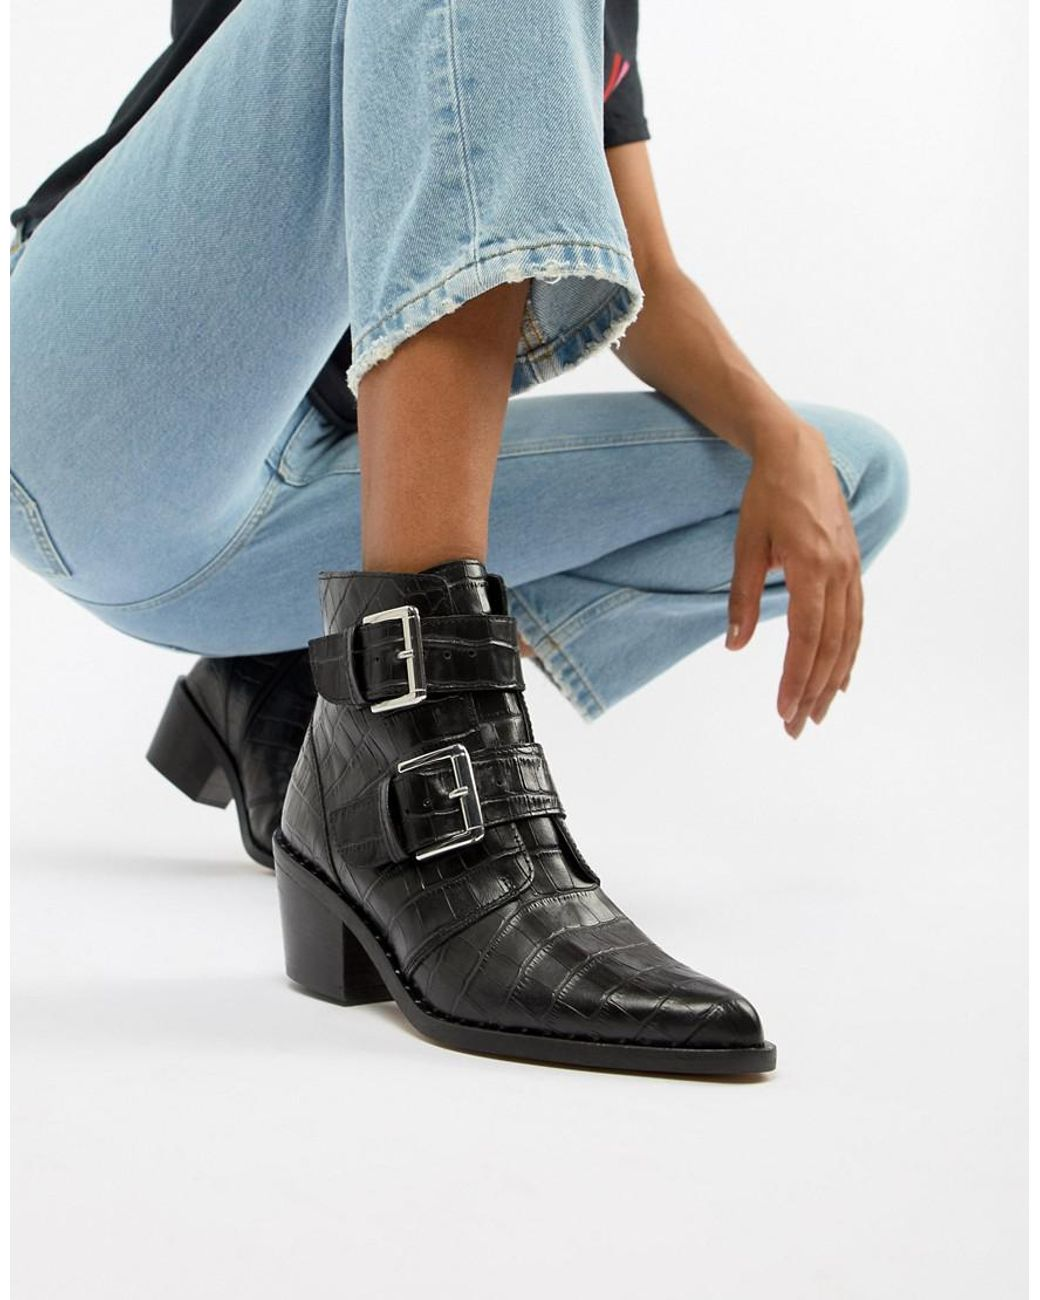 641921ac7bfd7 Kurt Geiger Denny Boots in Black - Save 10% - Lyst